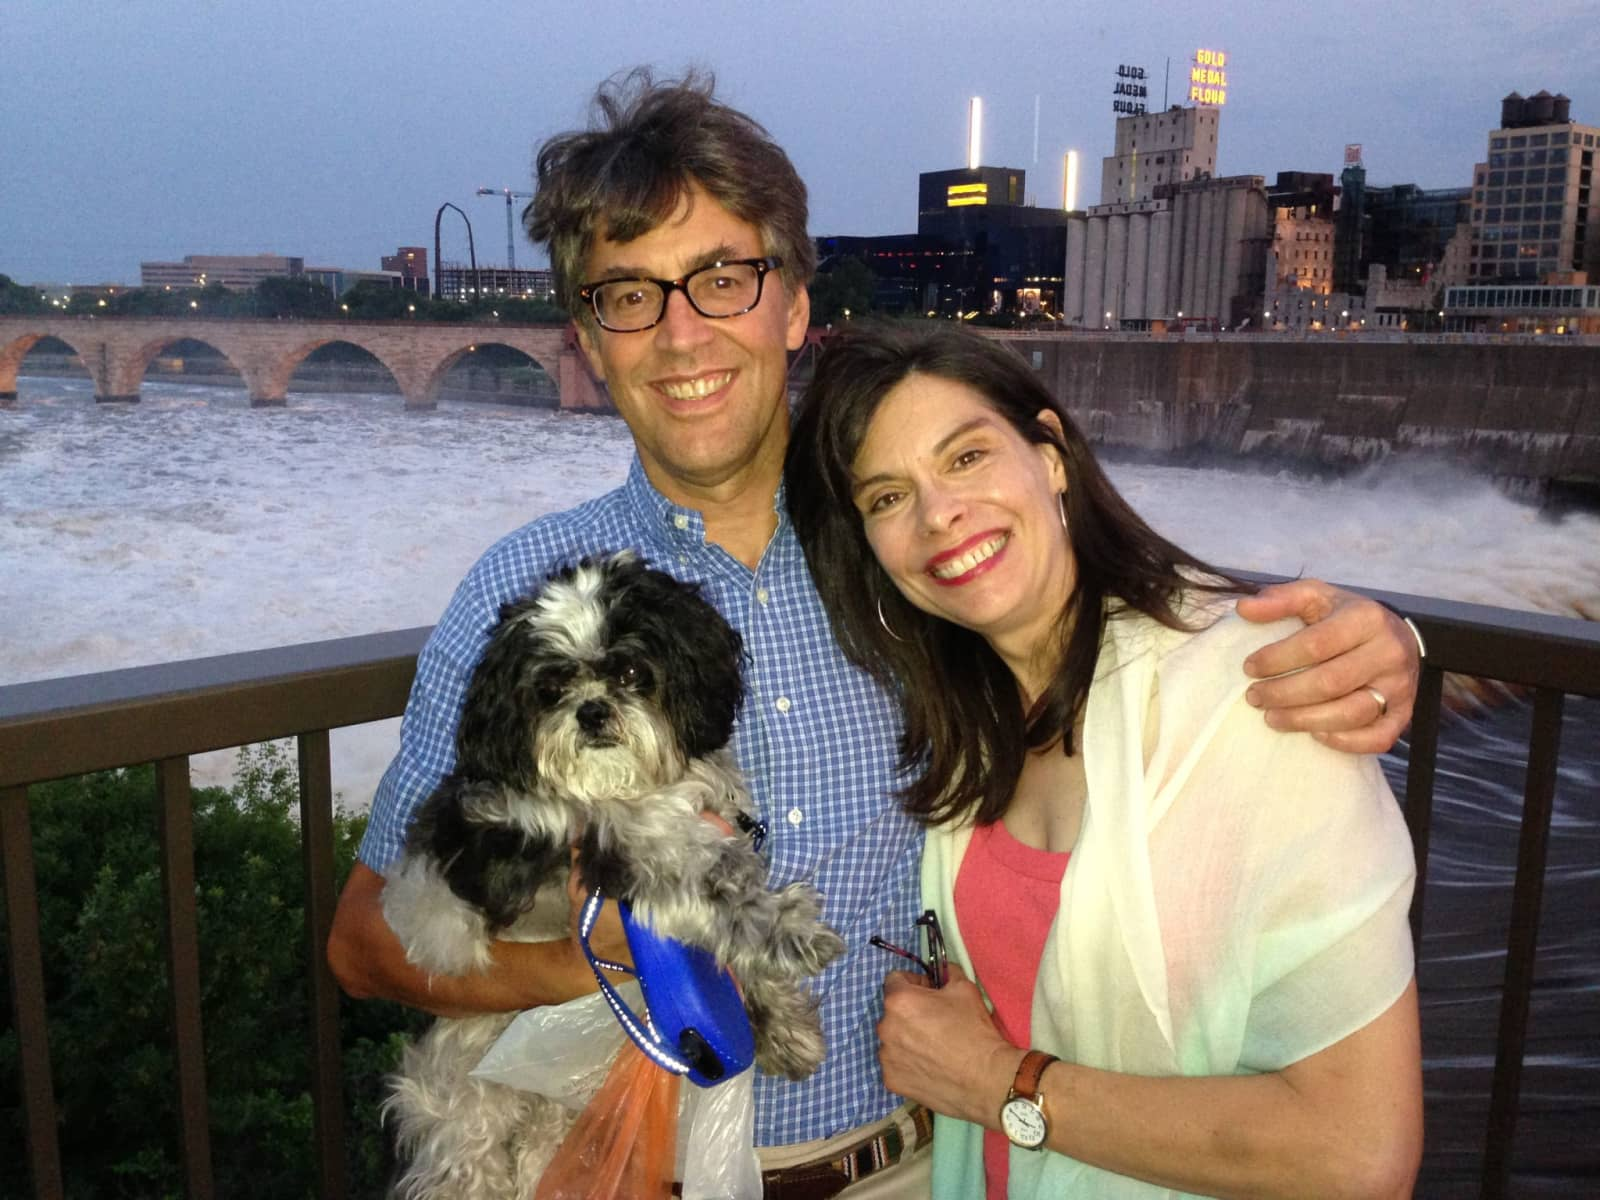 Mary & Bruce from Minneapolis, Minnesota, United States